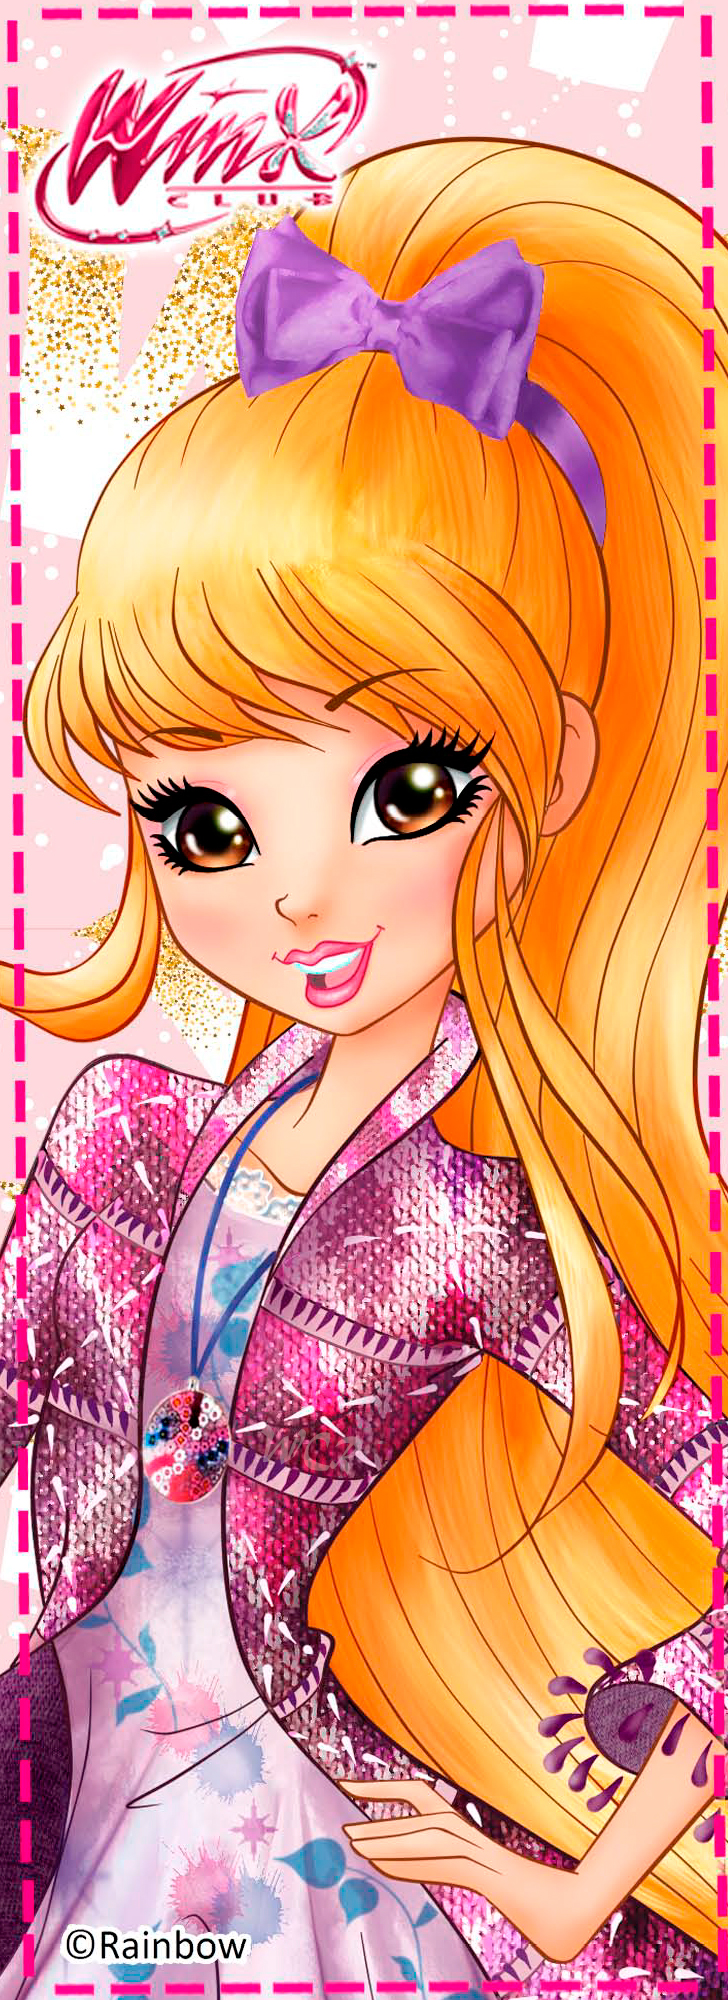 Winx Club season 8 new pictures of Bloom, Stella, Flora